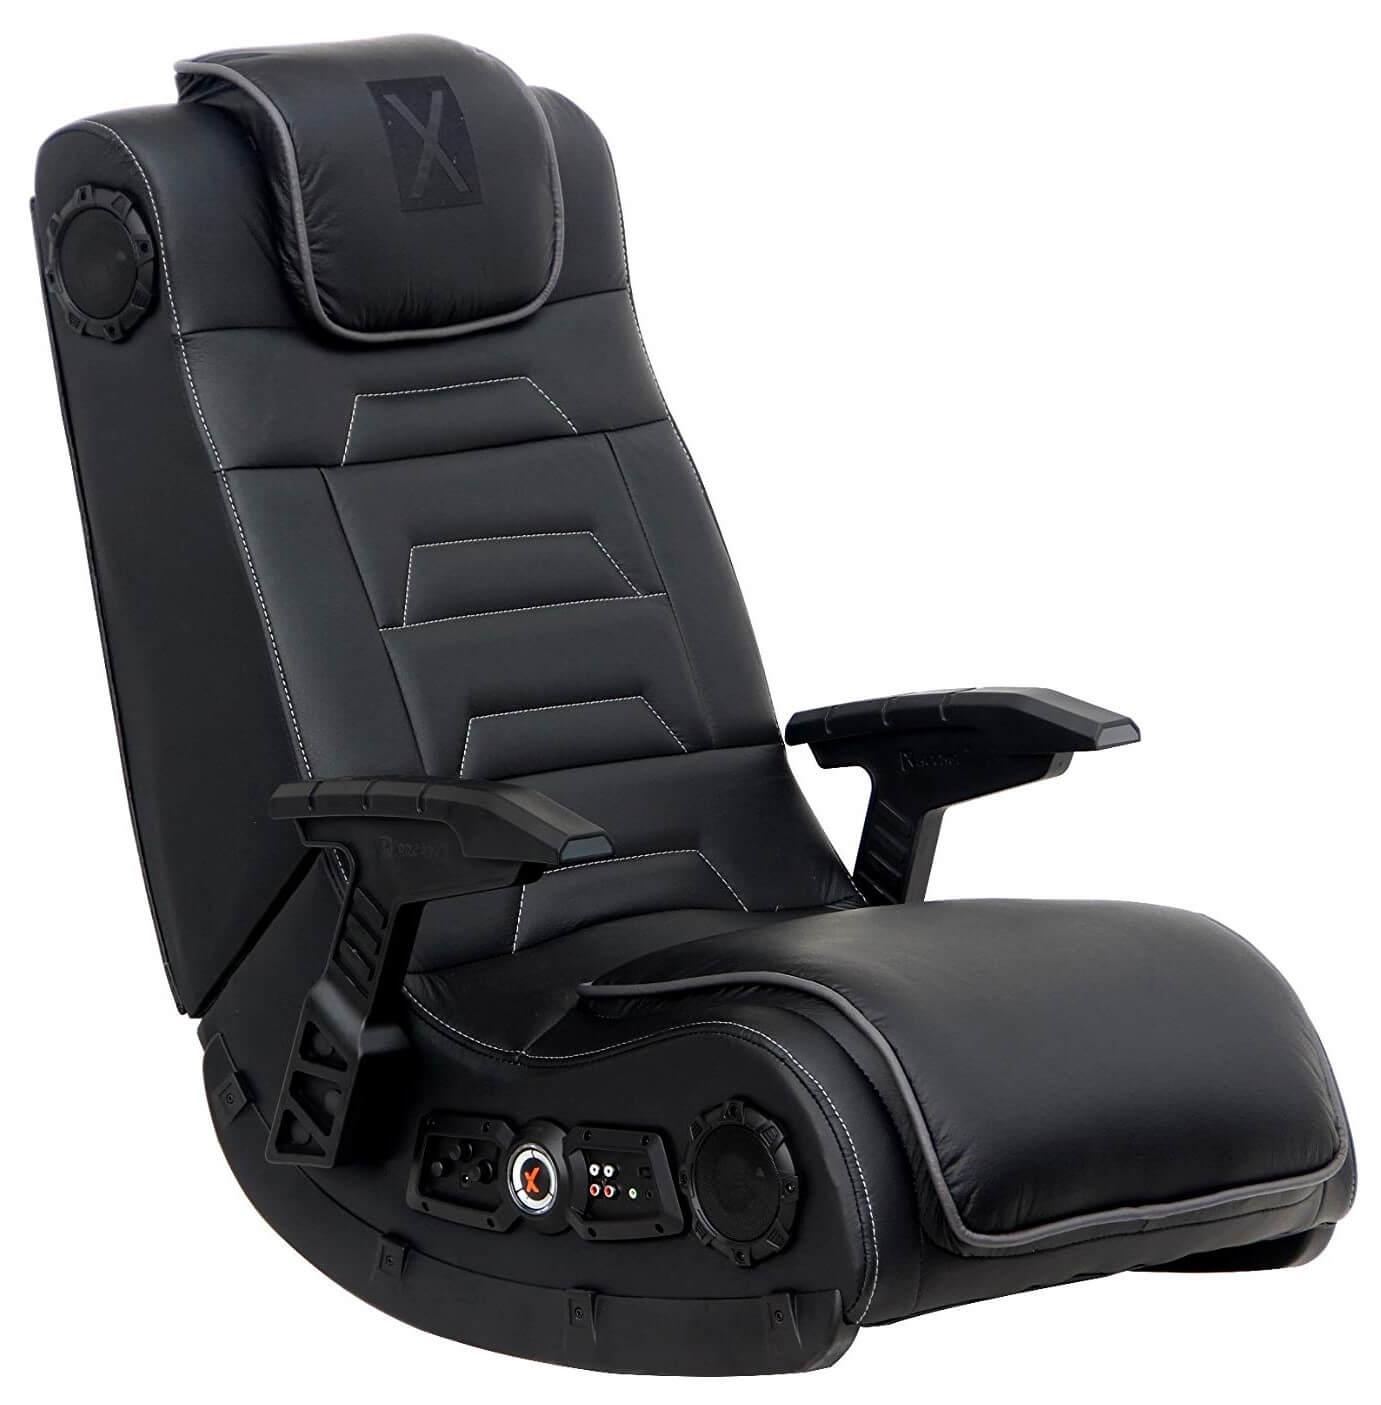 Game Chairs With Speakers Big And Tall Gaming Chair For Guys Heavy Duty Chairs